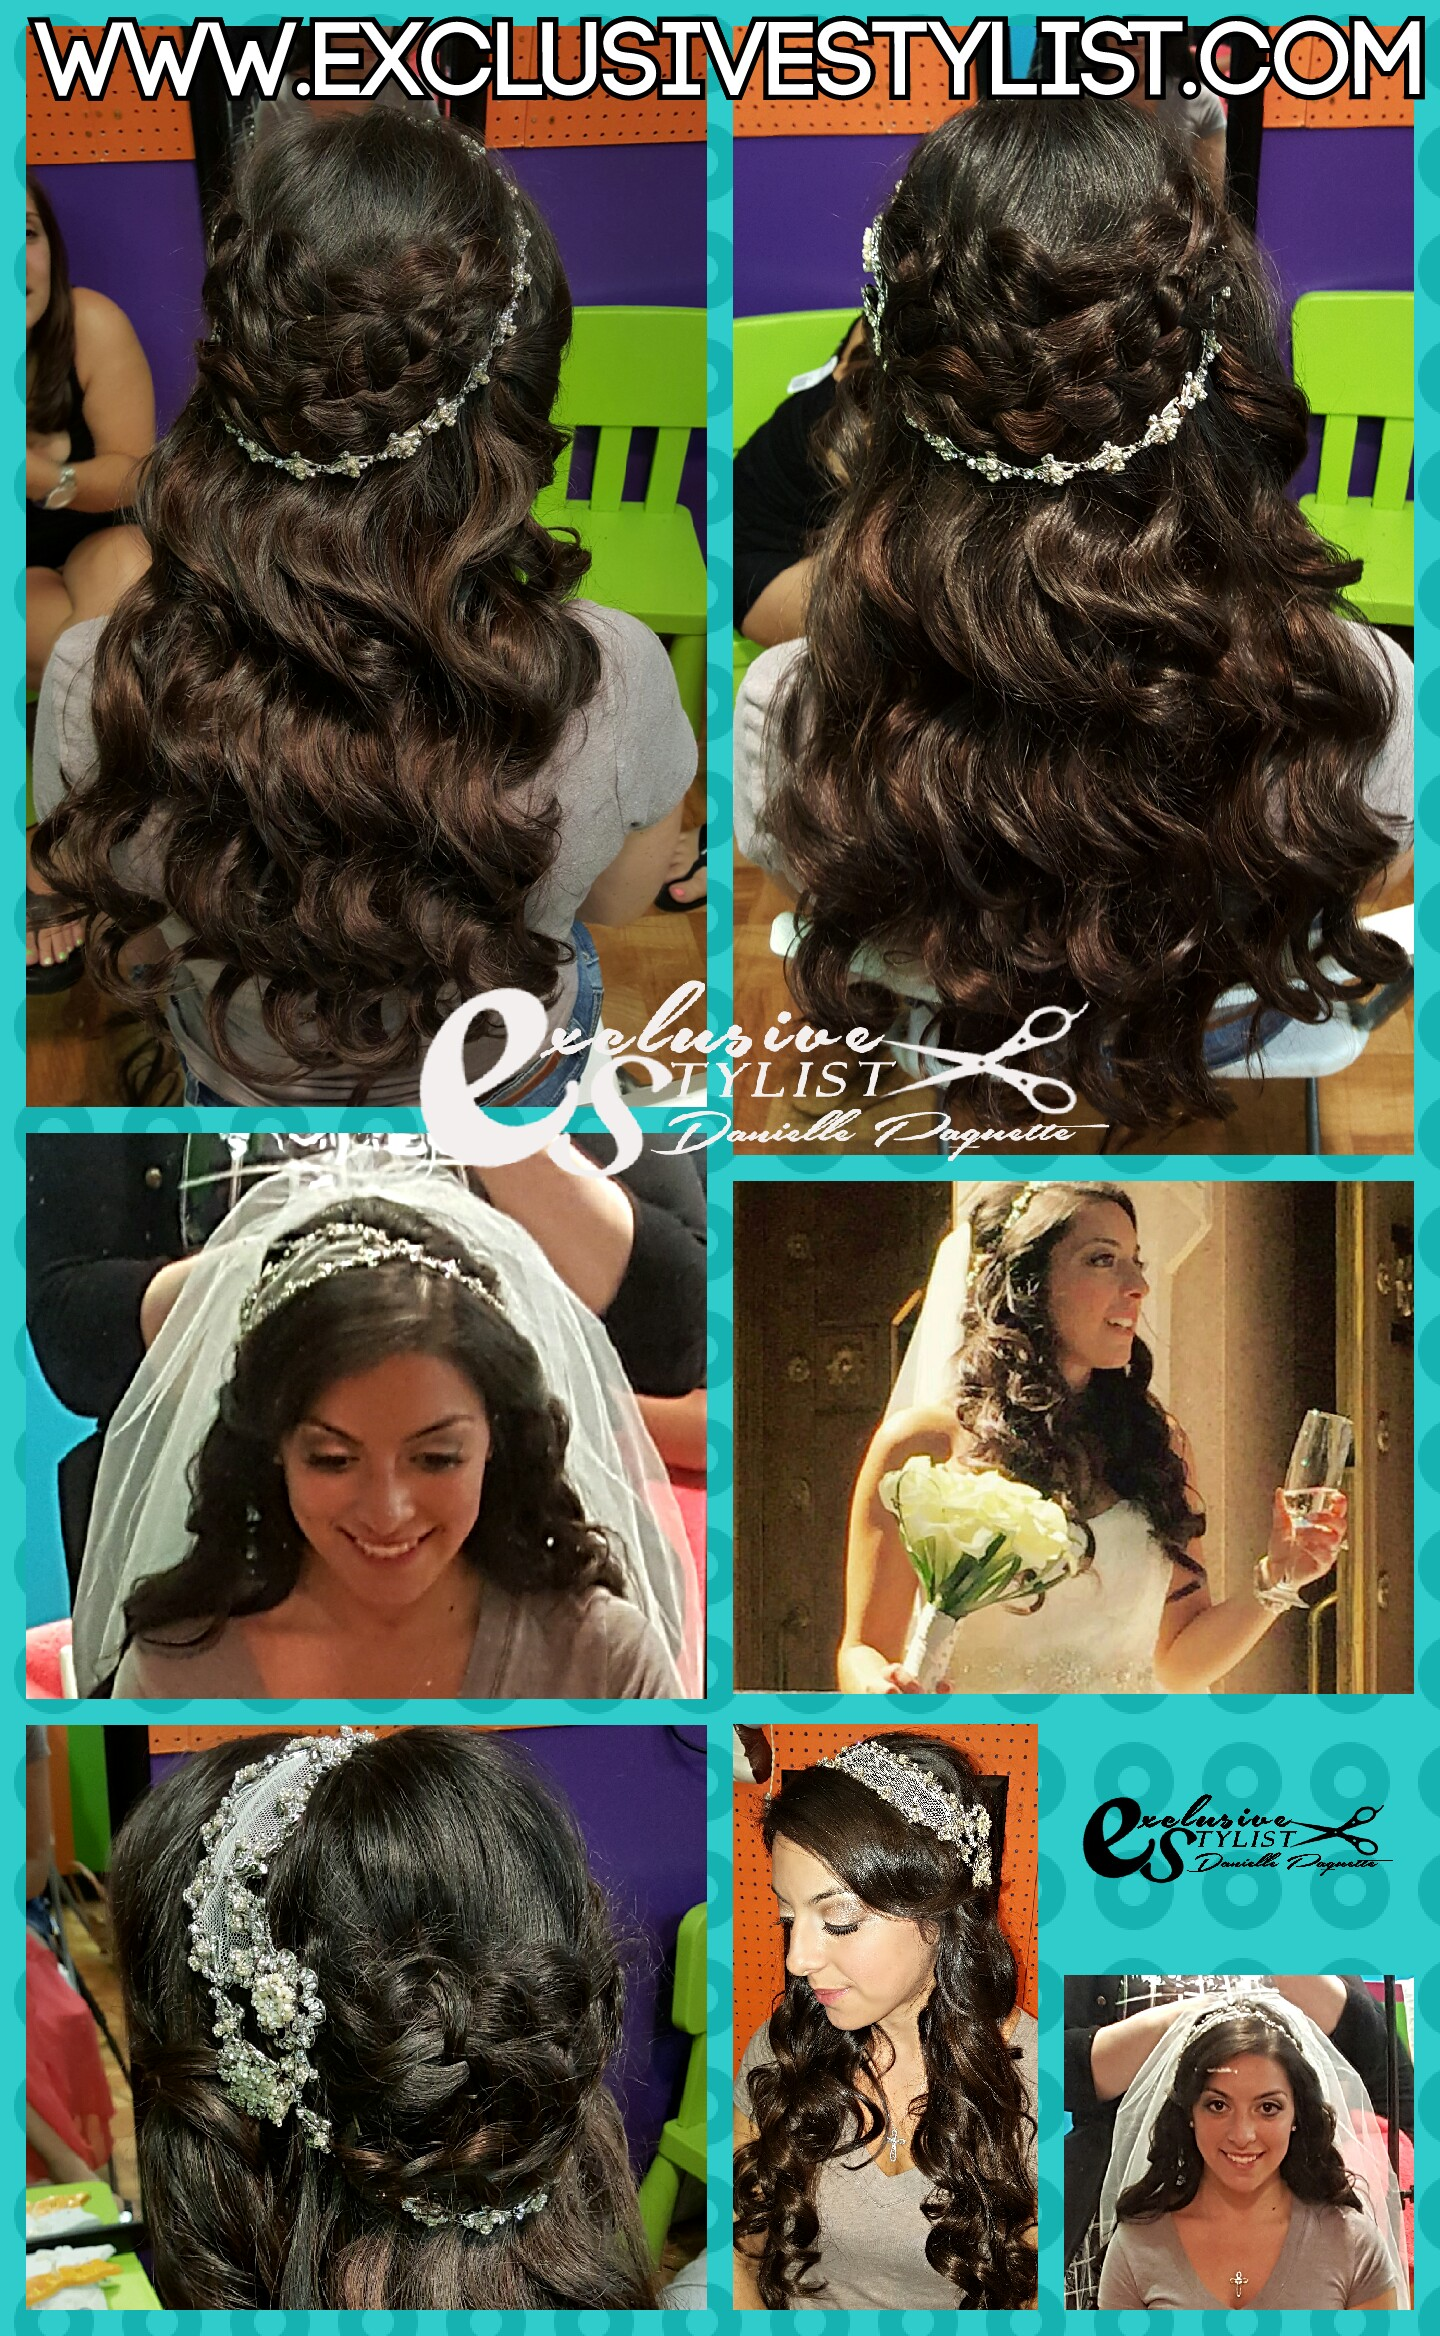 Bridal Trial for Vitere Wedding